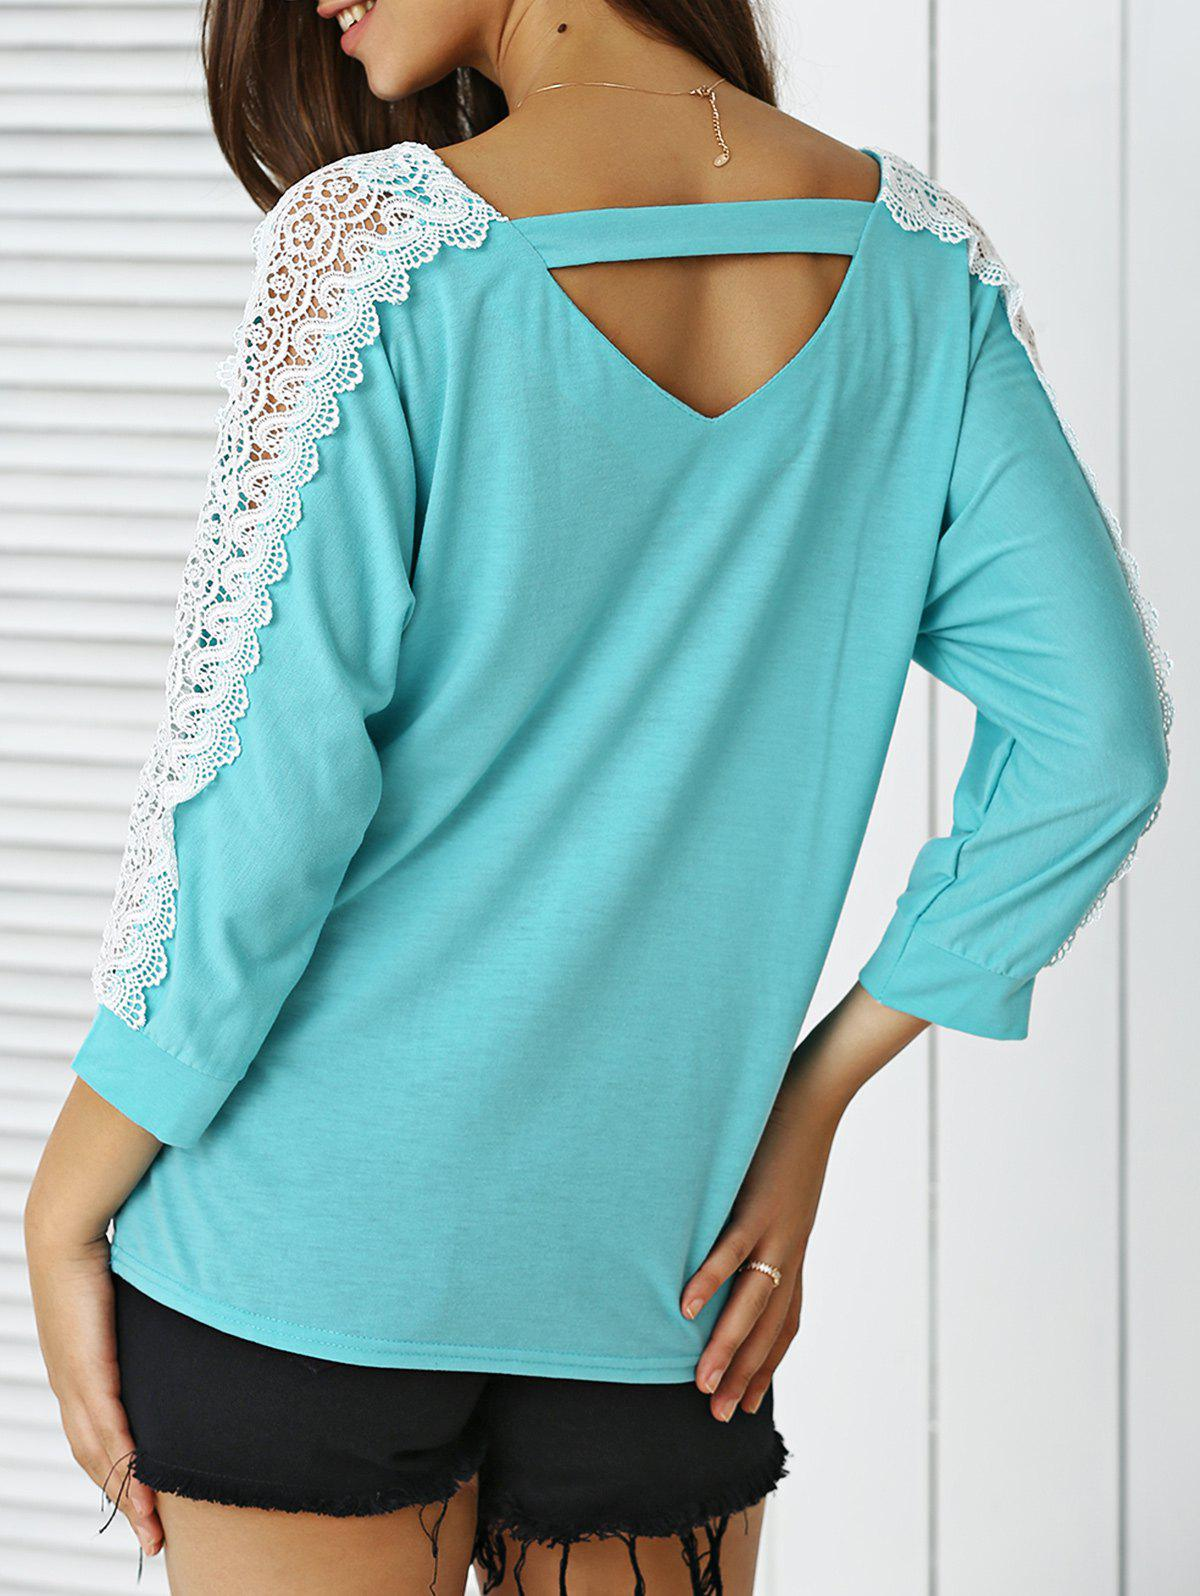 V-Neck Lace Applique Cut Out Blouse - Pers M